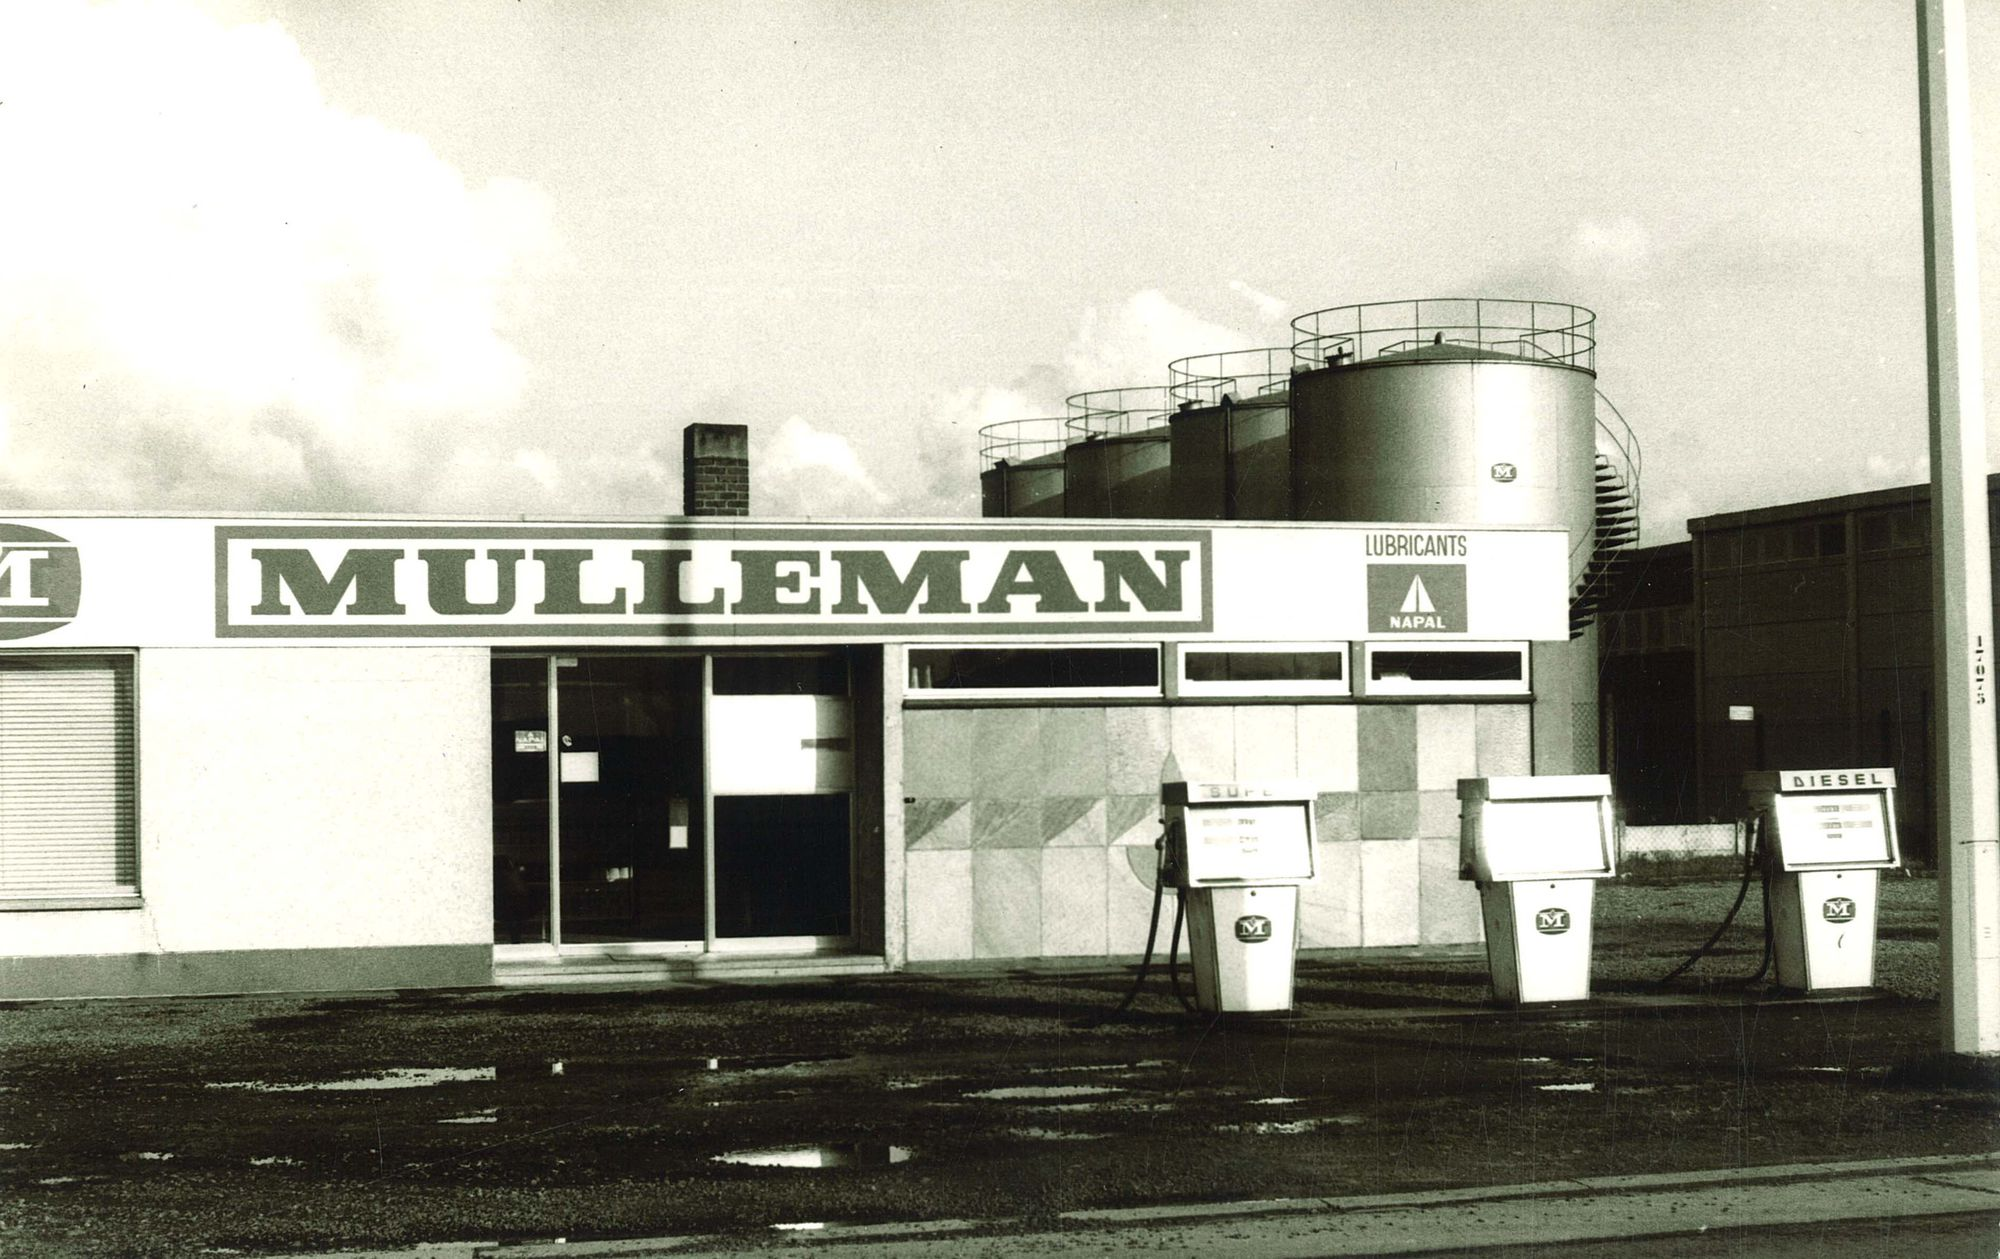 Mulleman Lubricants 1975